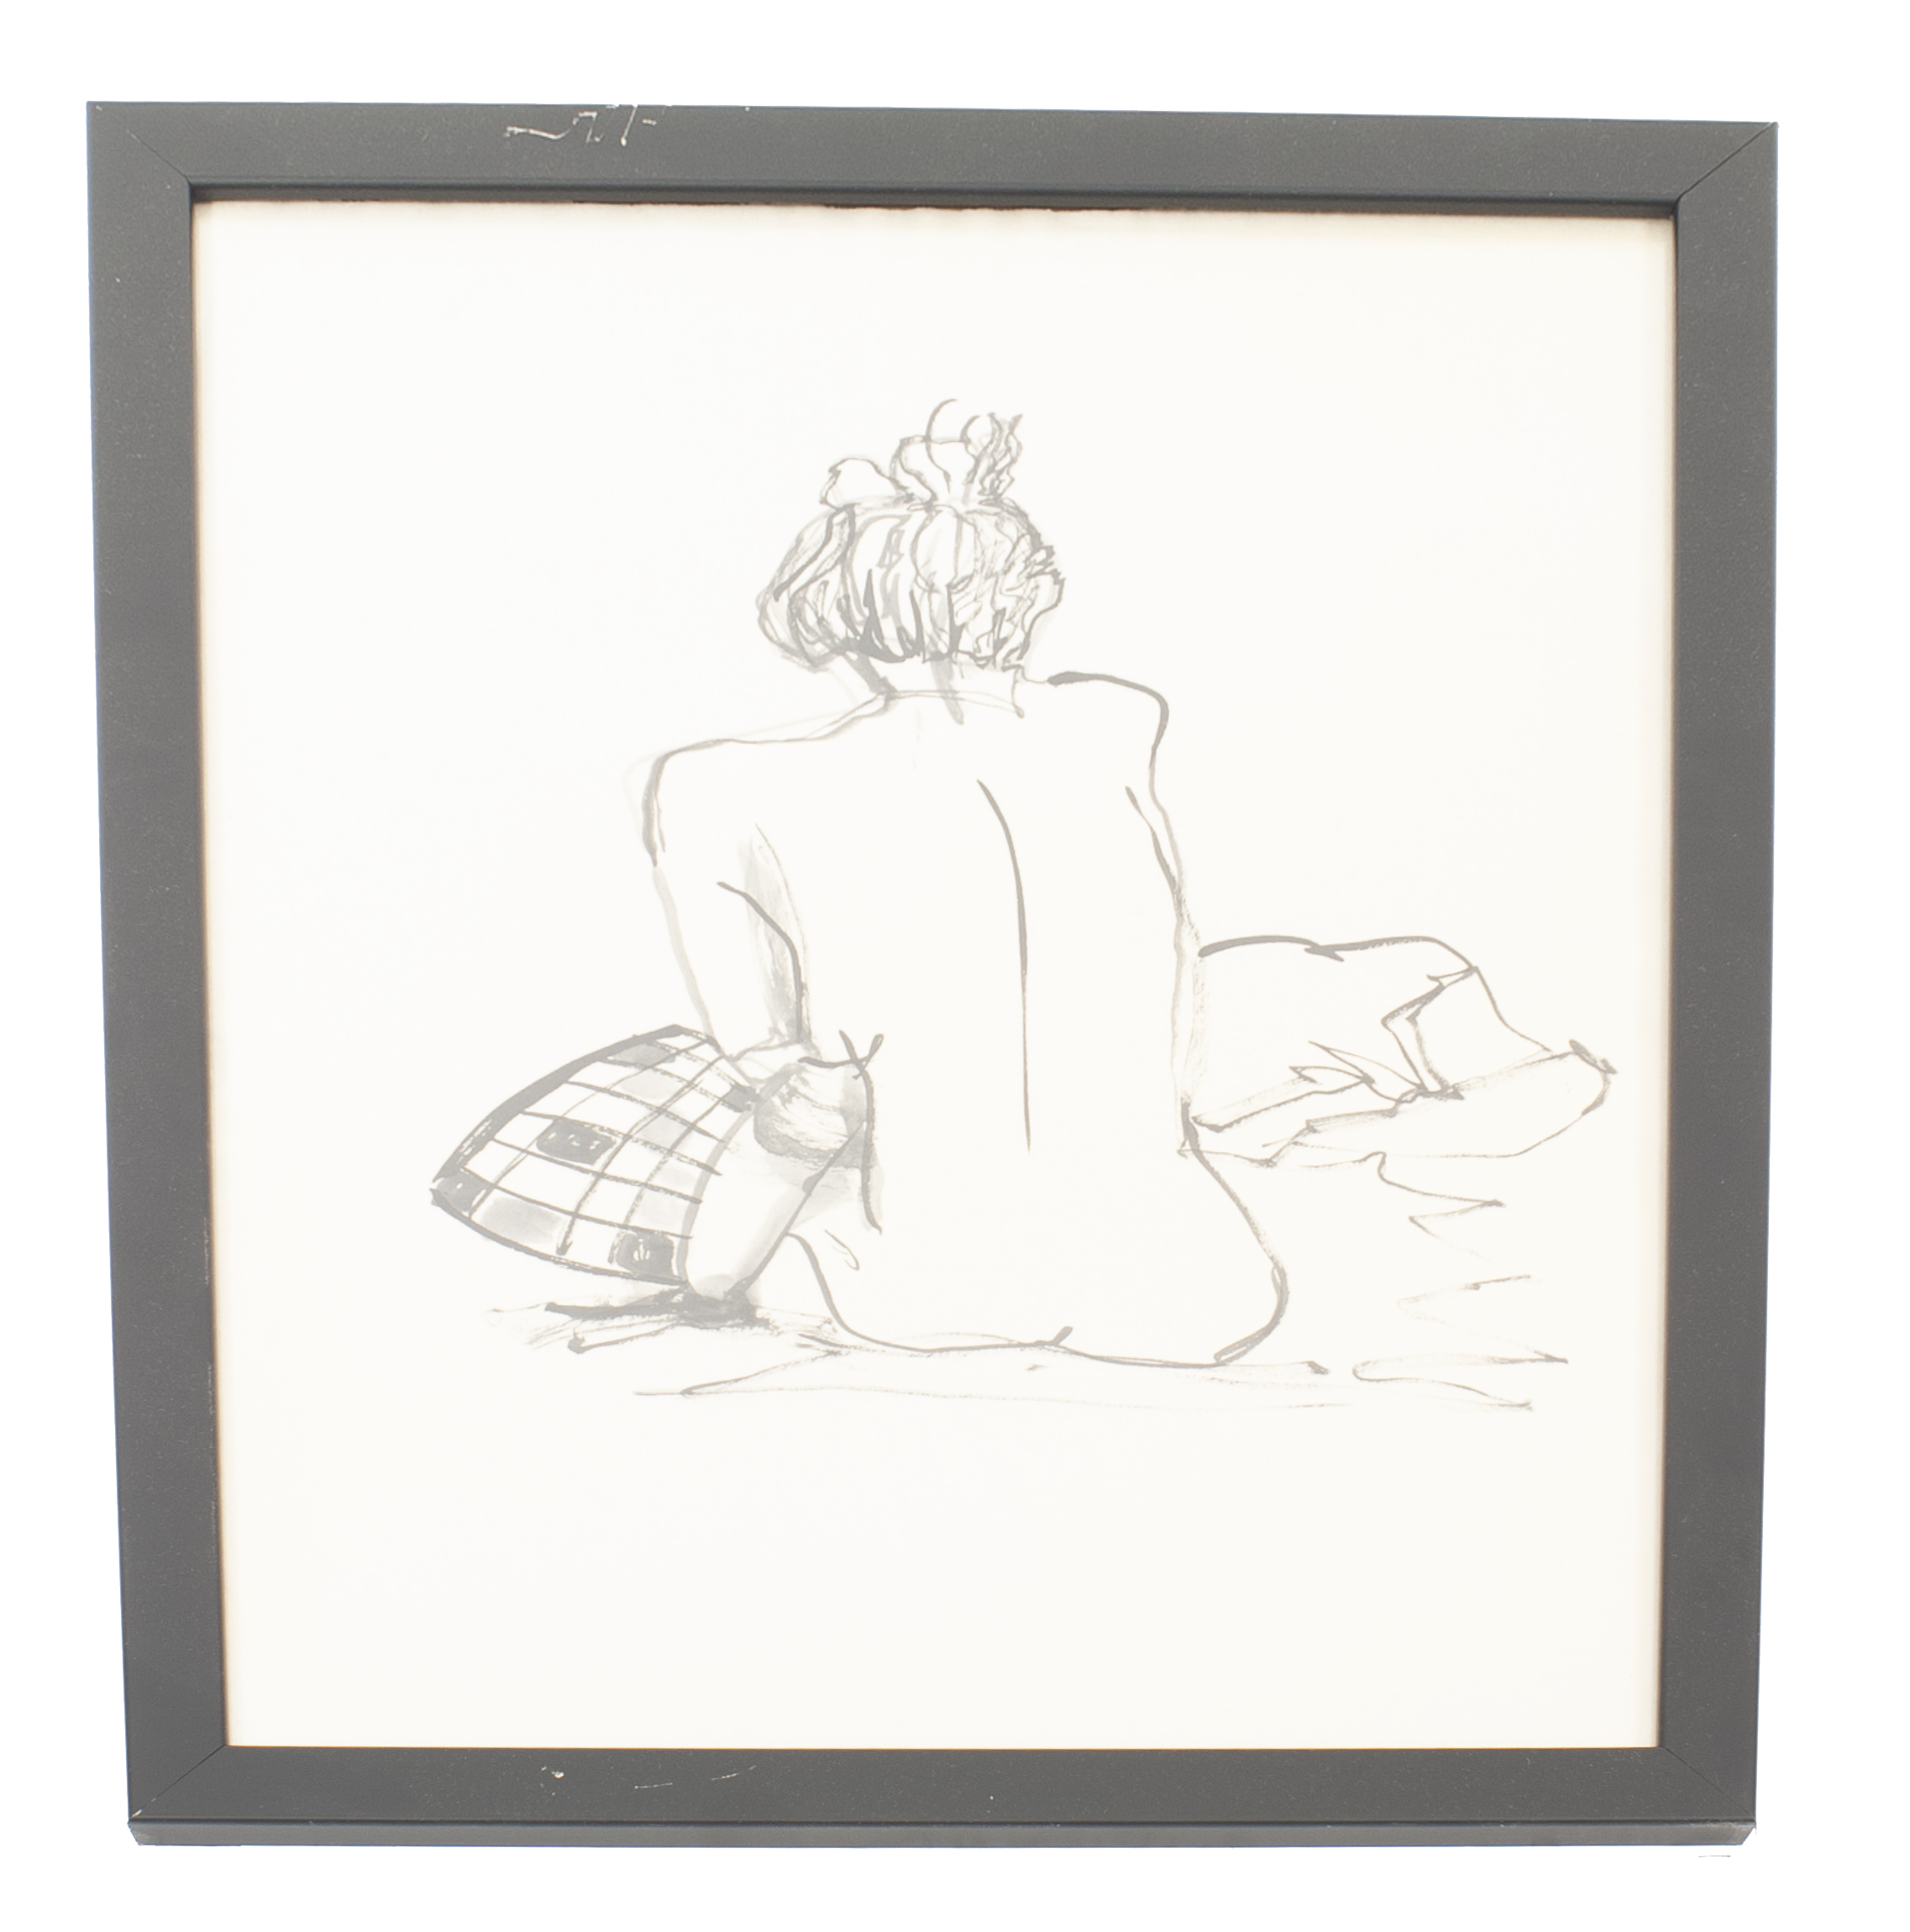 contemporary abstract black and white drawing of a person from